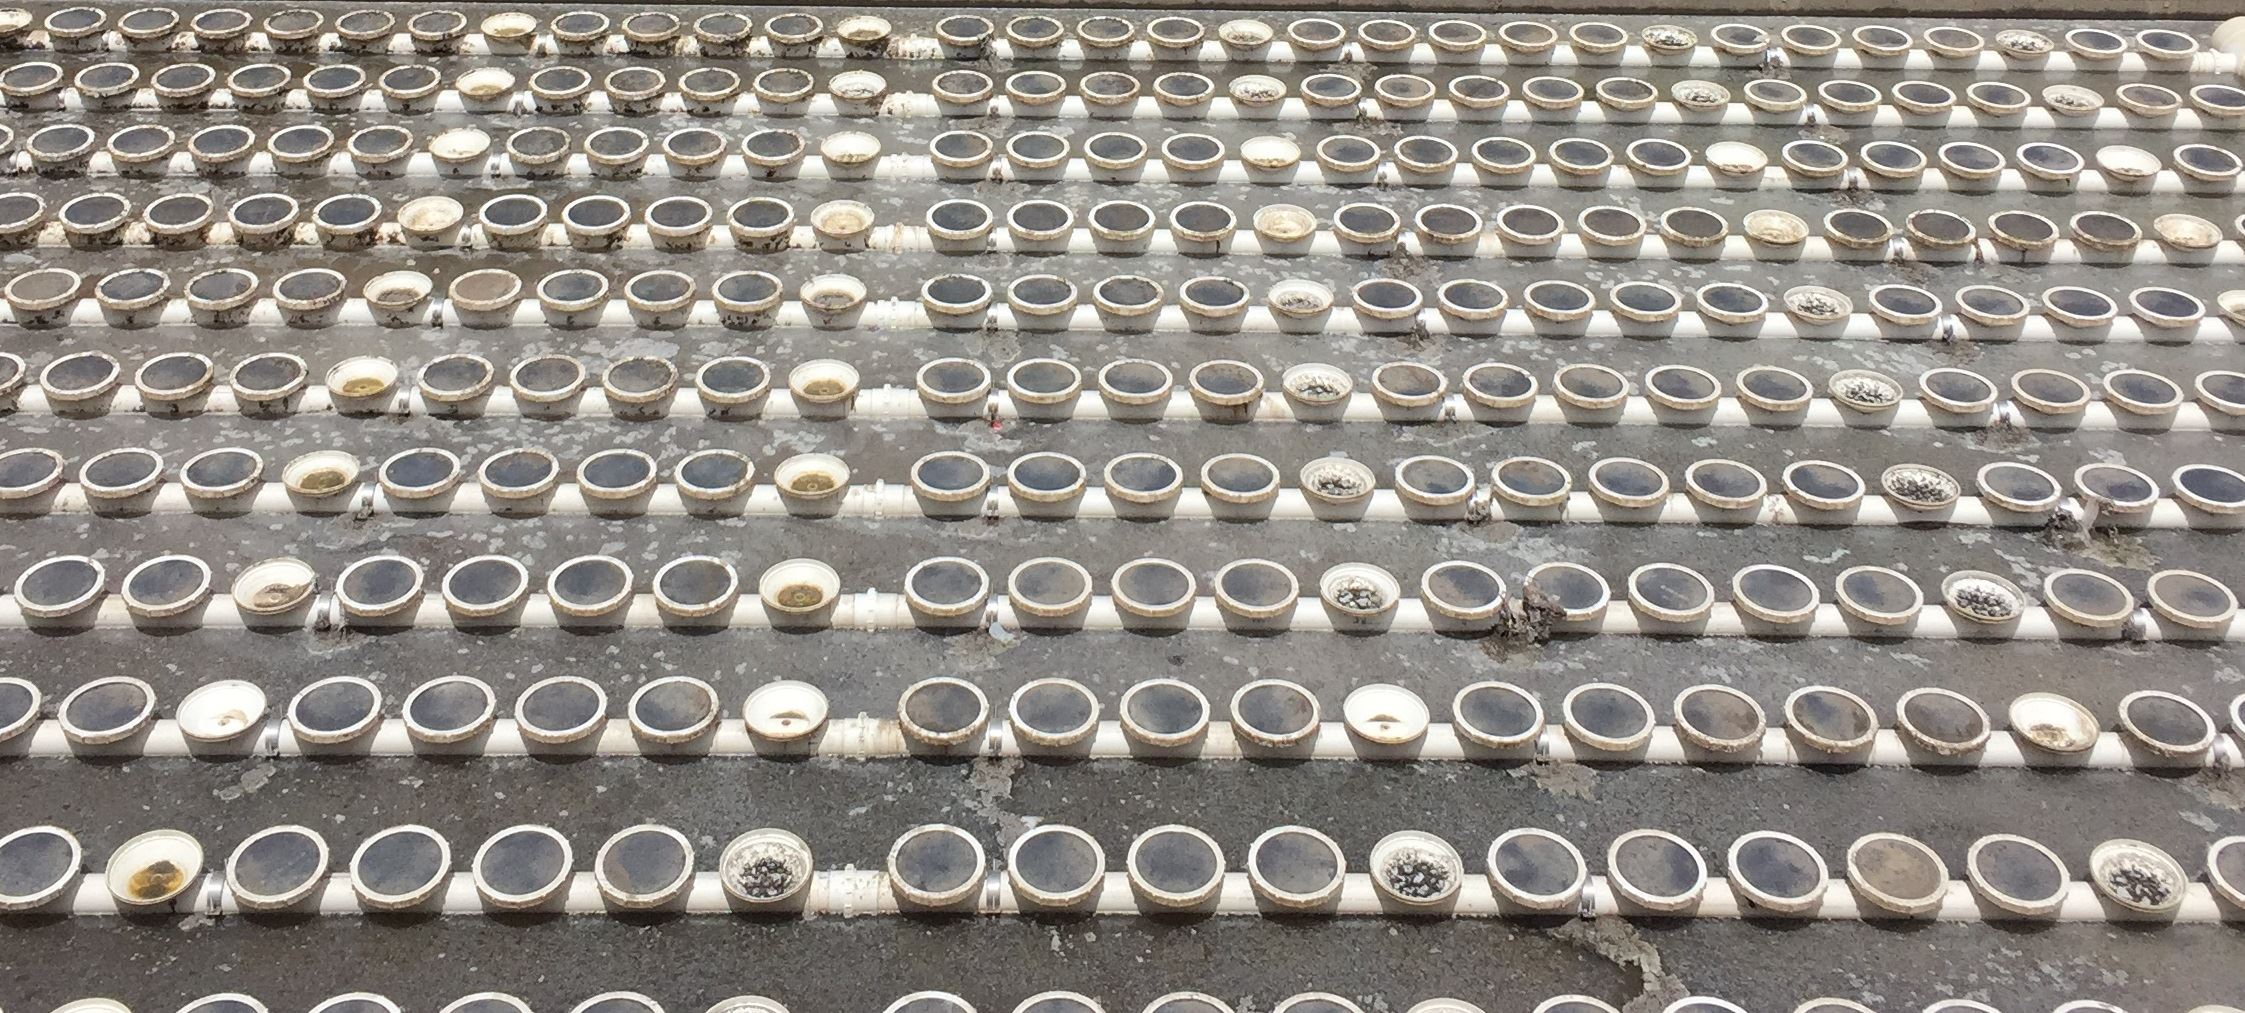 This is a picture of the aeration basin at the City of Blackfoot Wastewater Treatment Plant